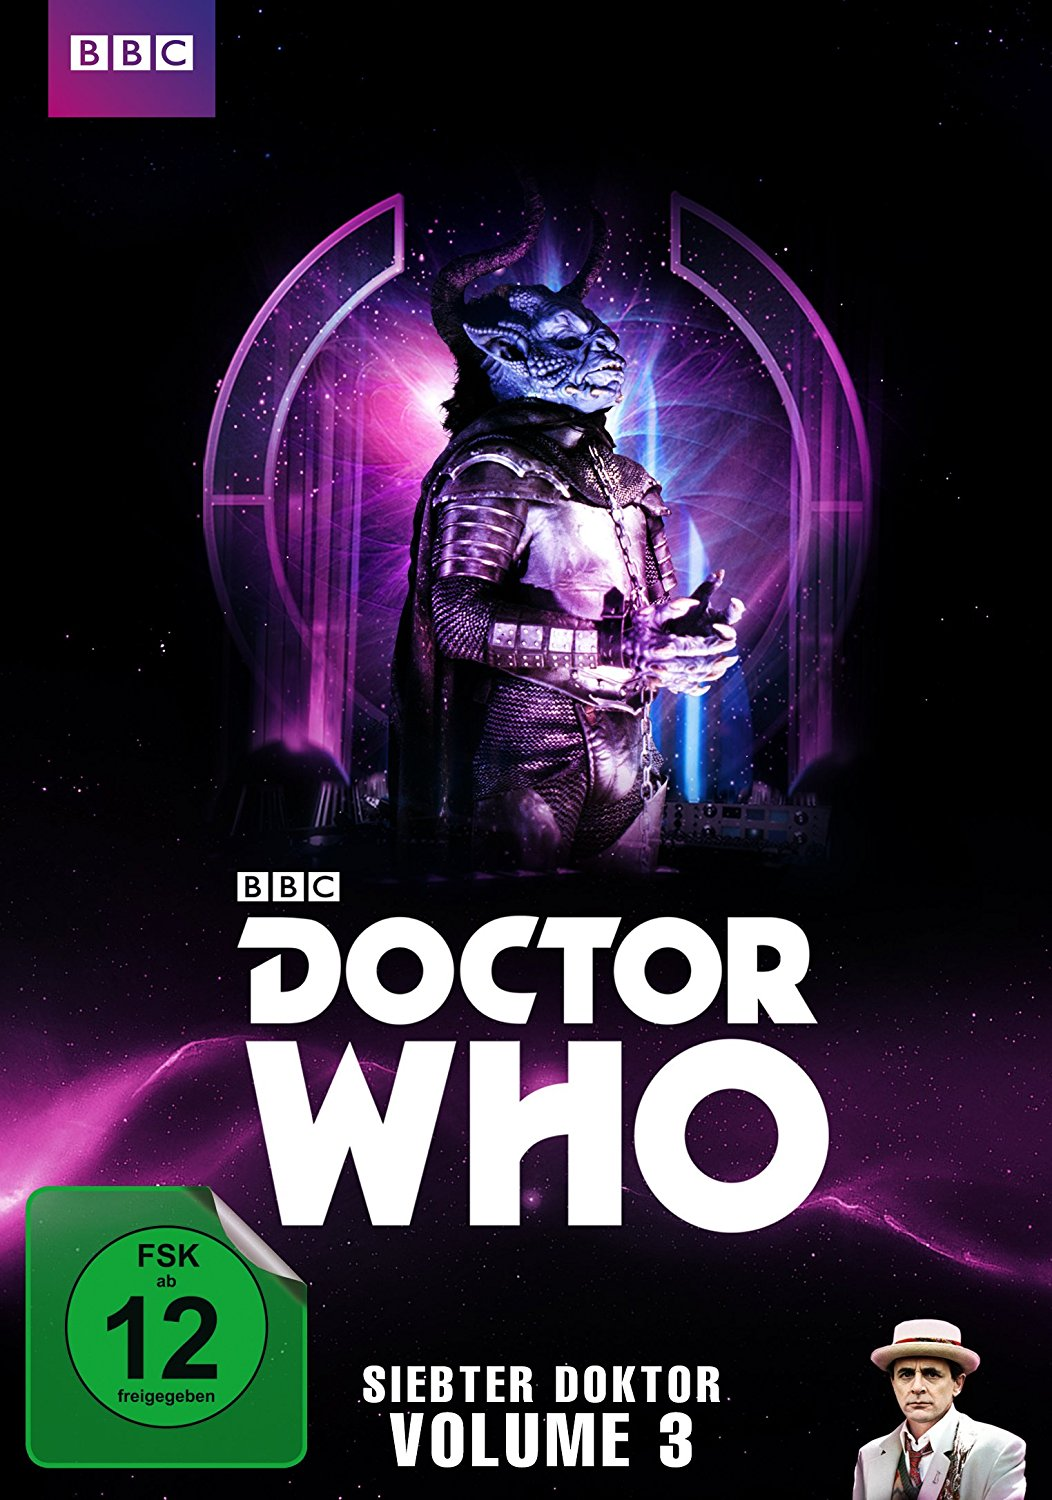 Doctor Who Siebter Doktor - Volume 3 - DVD